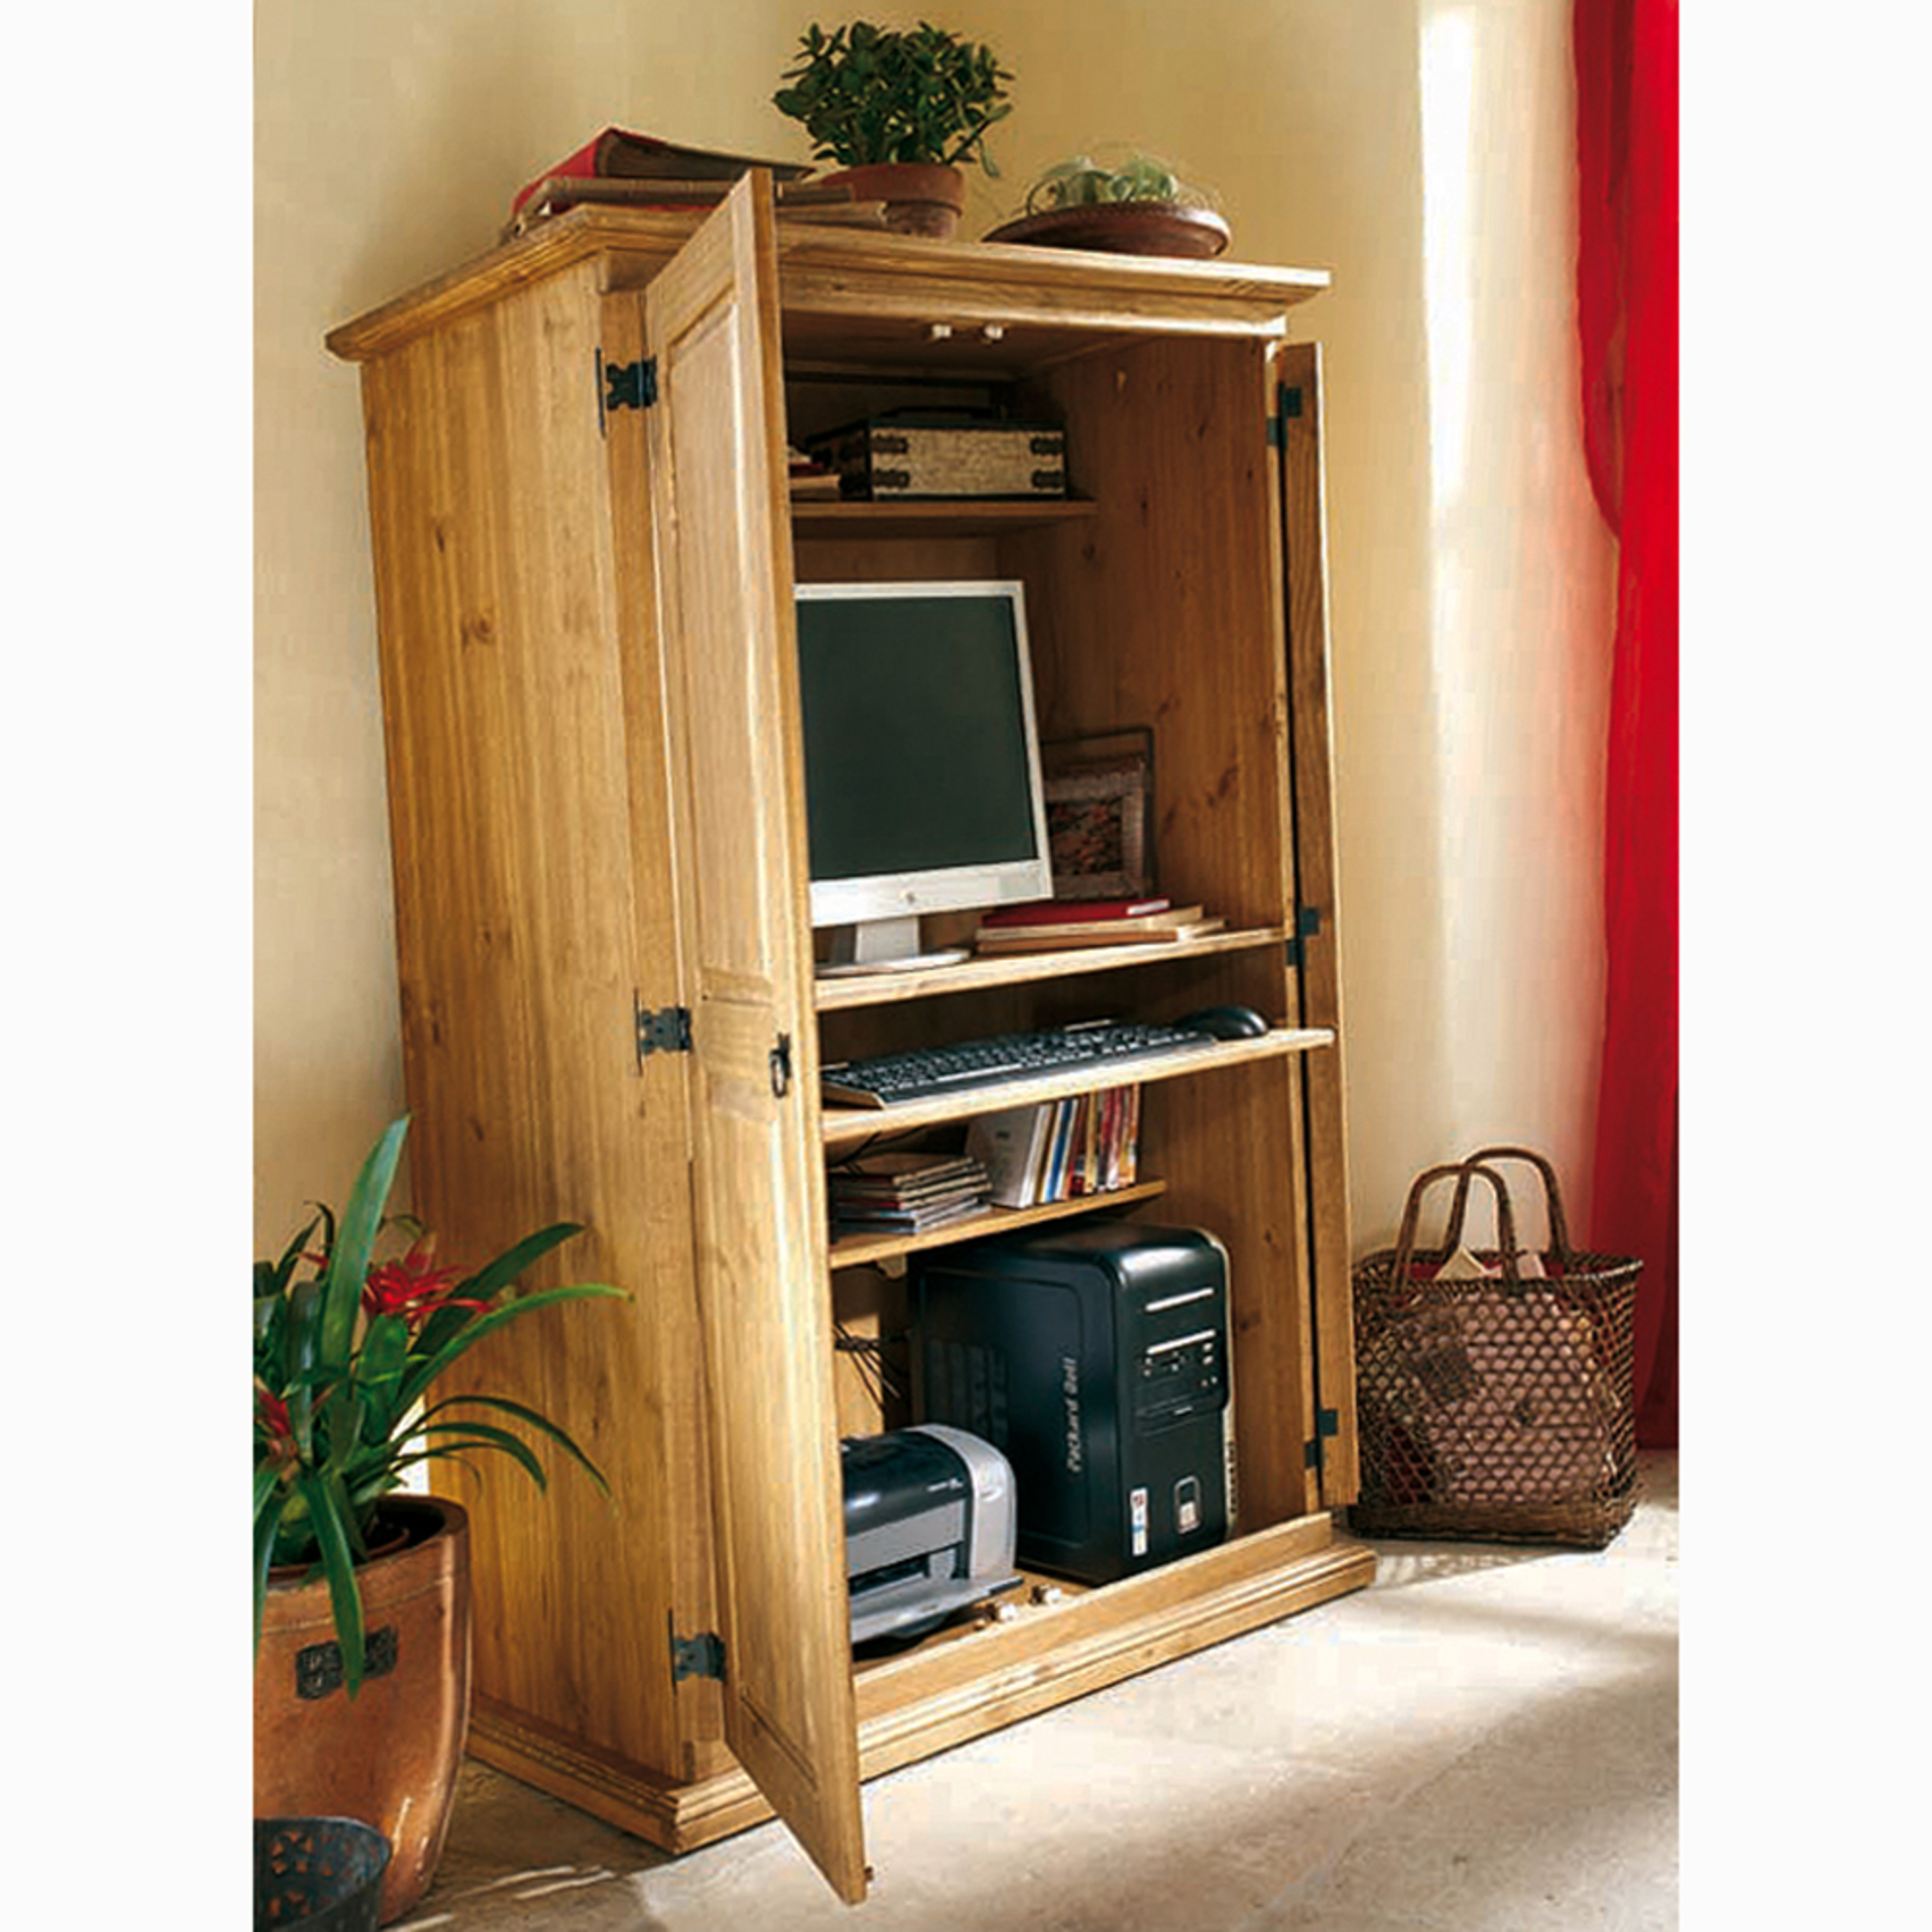 Meuble tv ou armoire micro informatique el patio for Meuble informatique bois